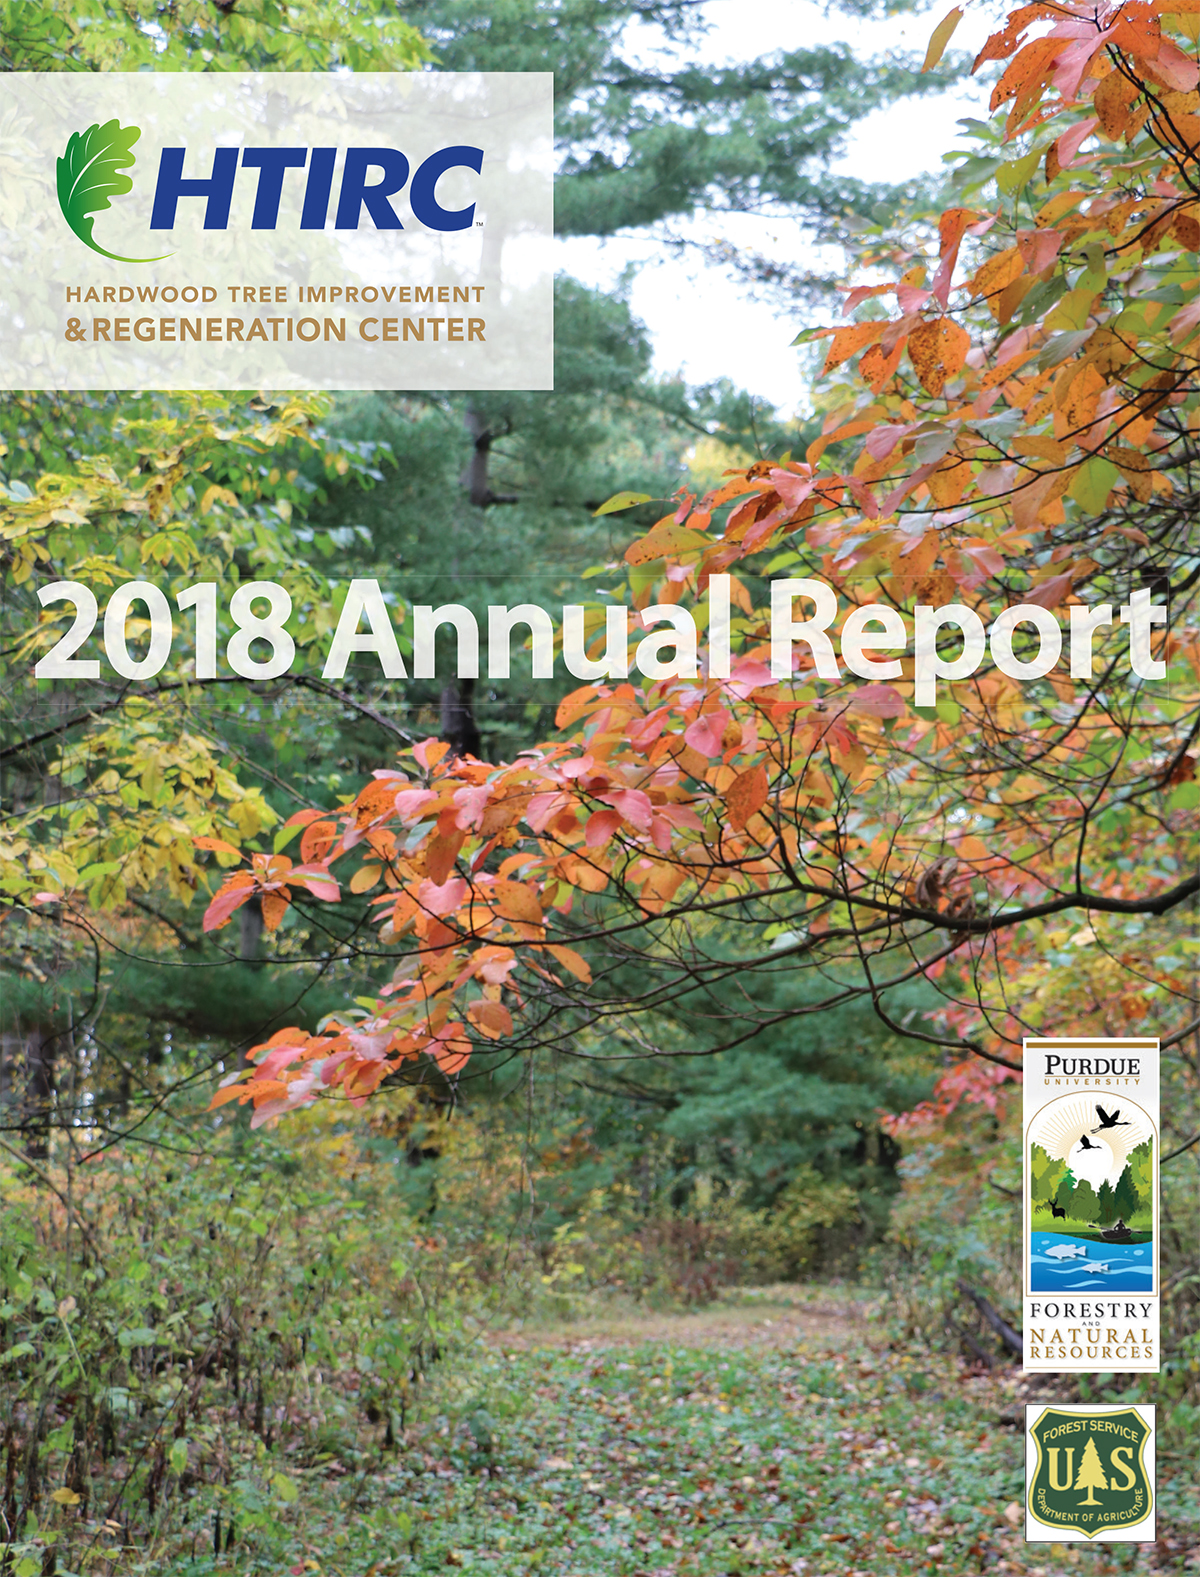 Image of Annual Report Cover Page